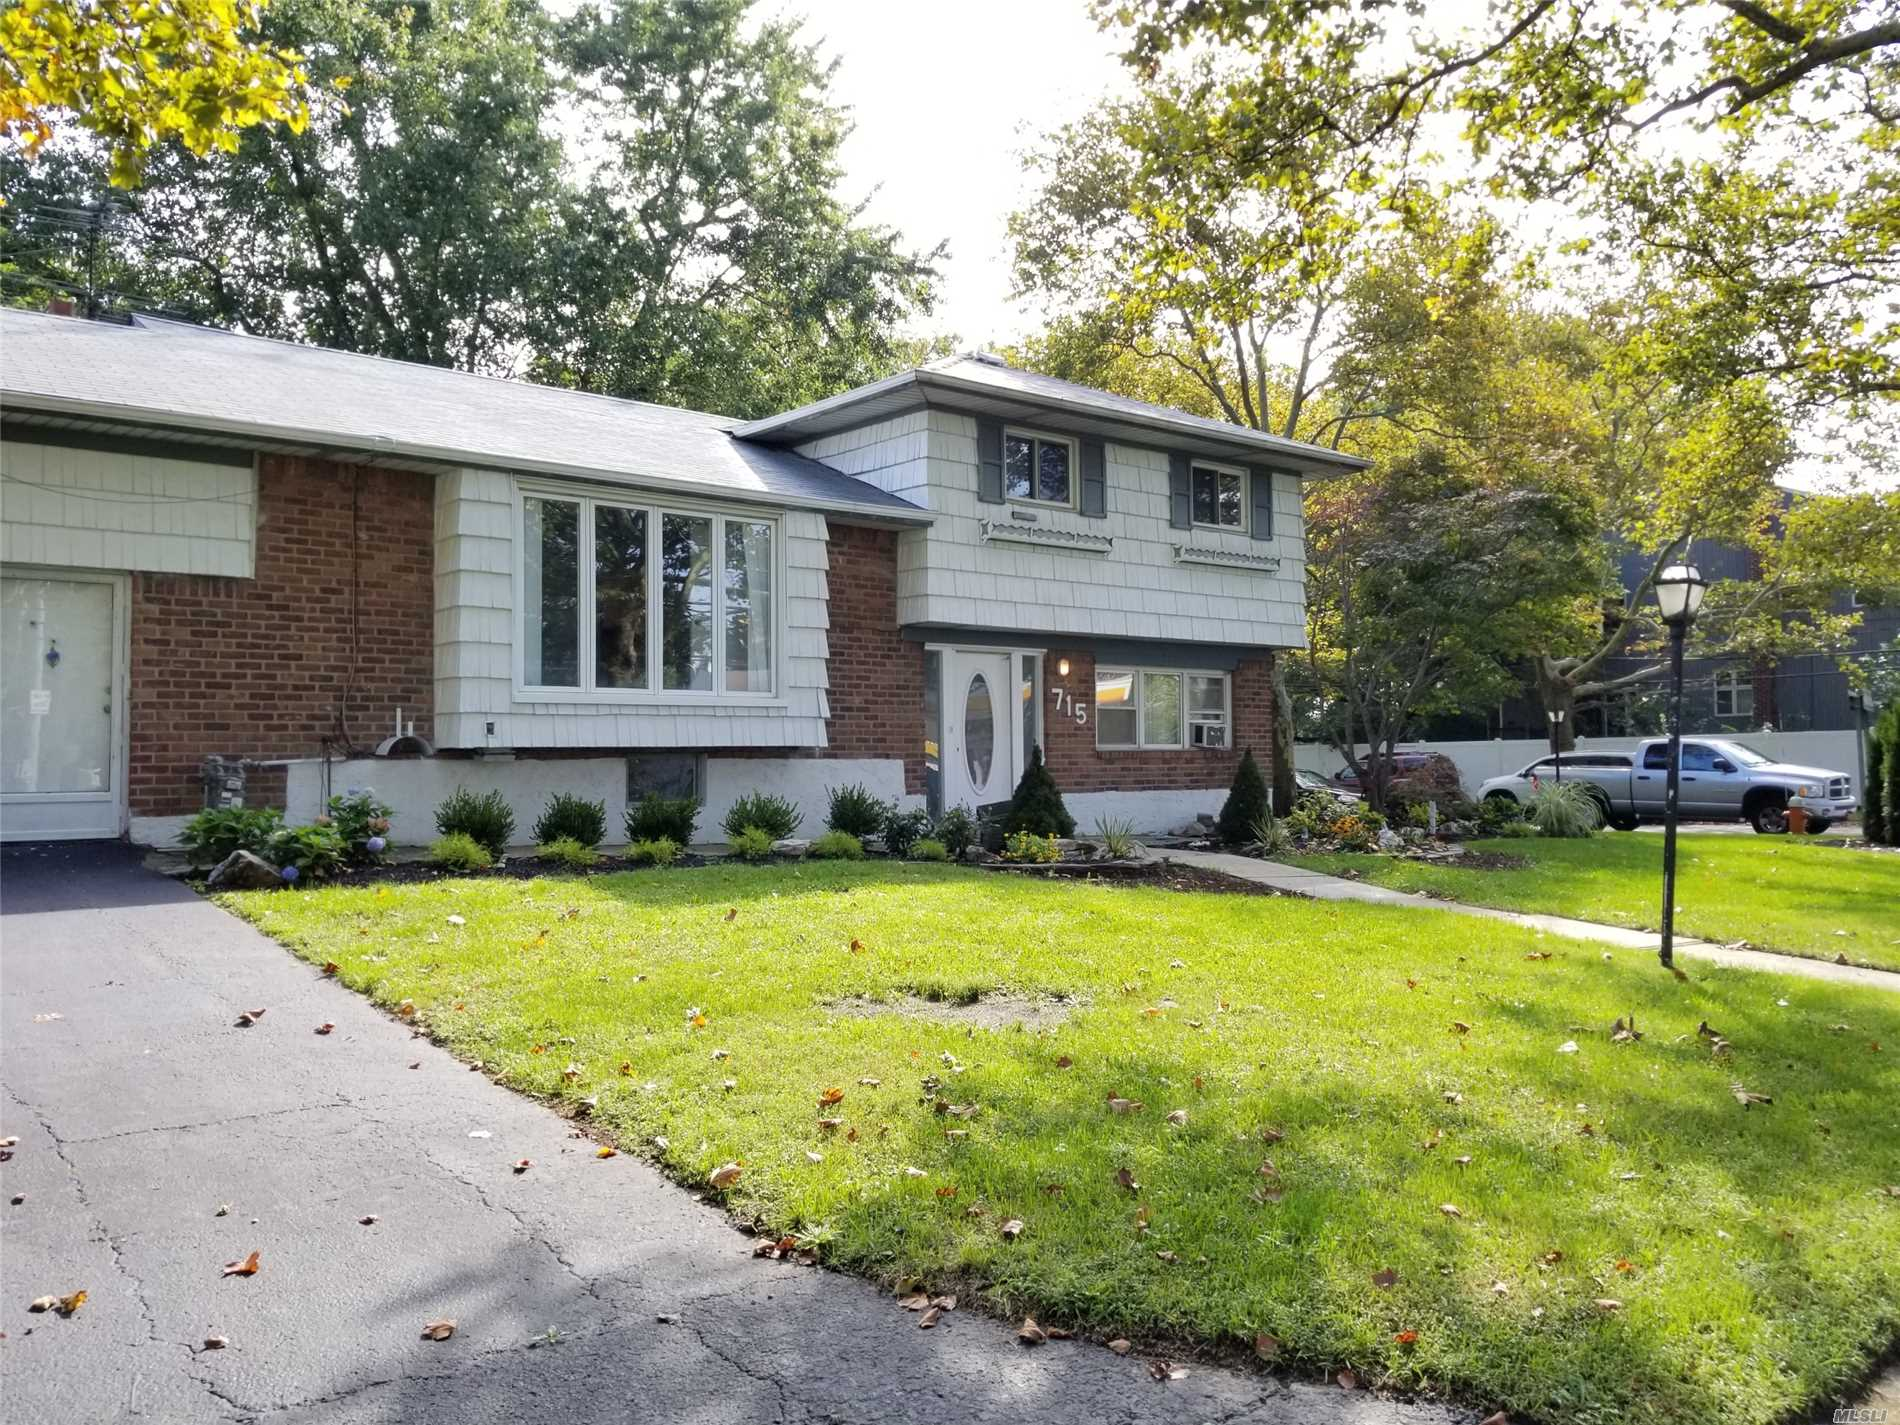 Newly Updated Split Level In Commack School District. 4 Bedroom, 2 Bath. New Kitchen, Bath, Carpet And Floors. New Landscaping. Updated Elec 200 Amp, Newer Cesspools And Burner, Great Professional Location For Dr., Atty., Daycare, Etc.